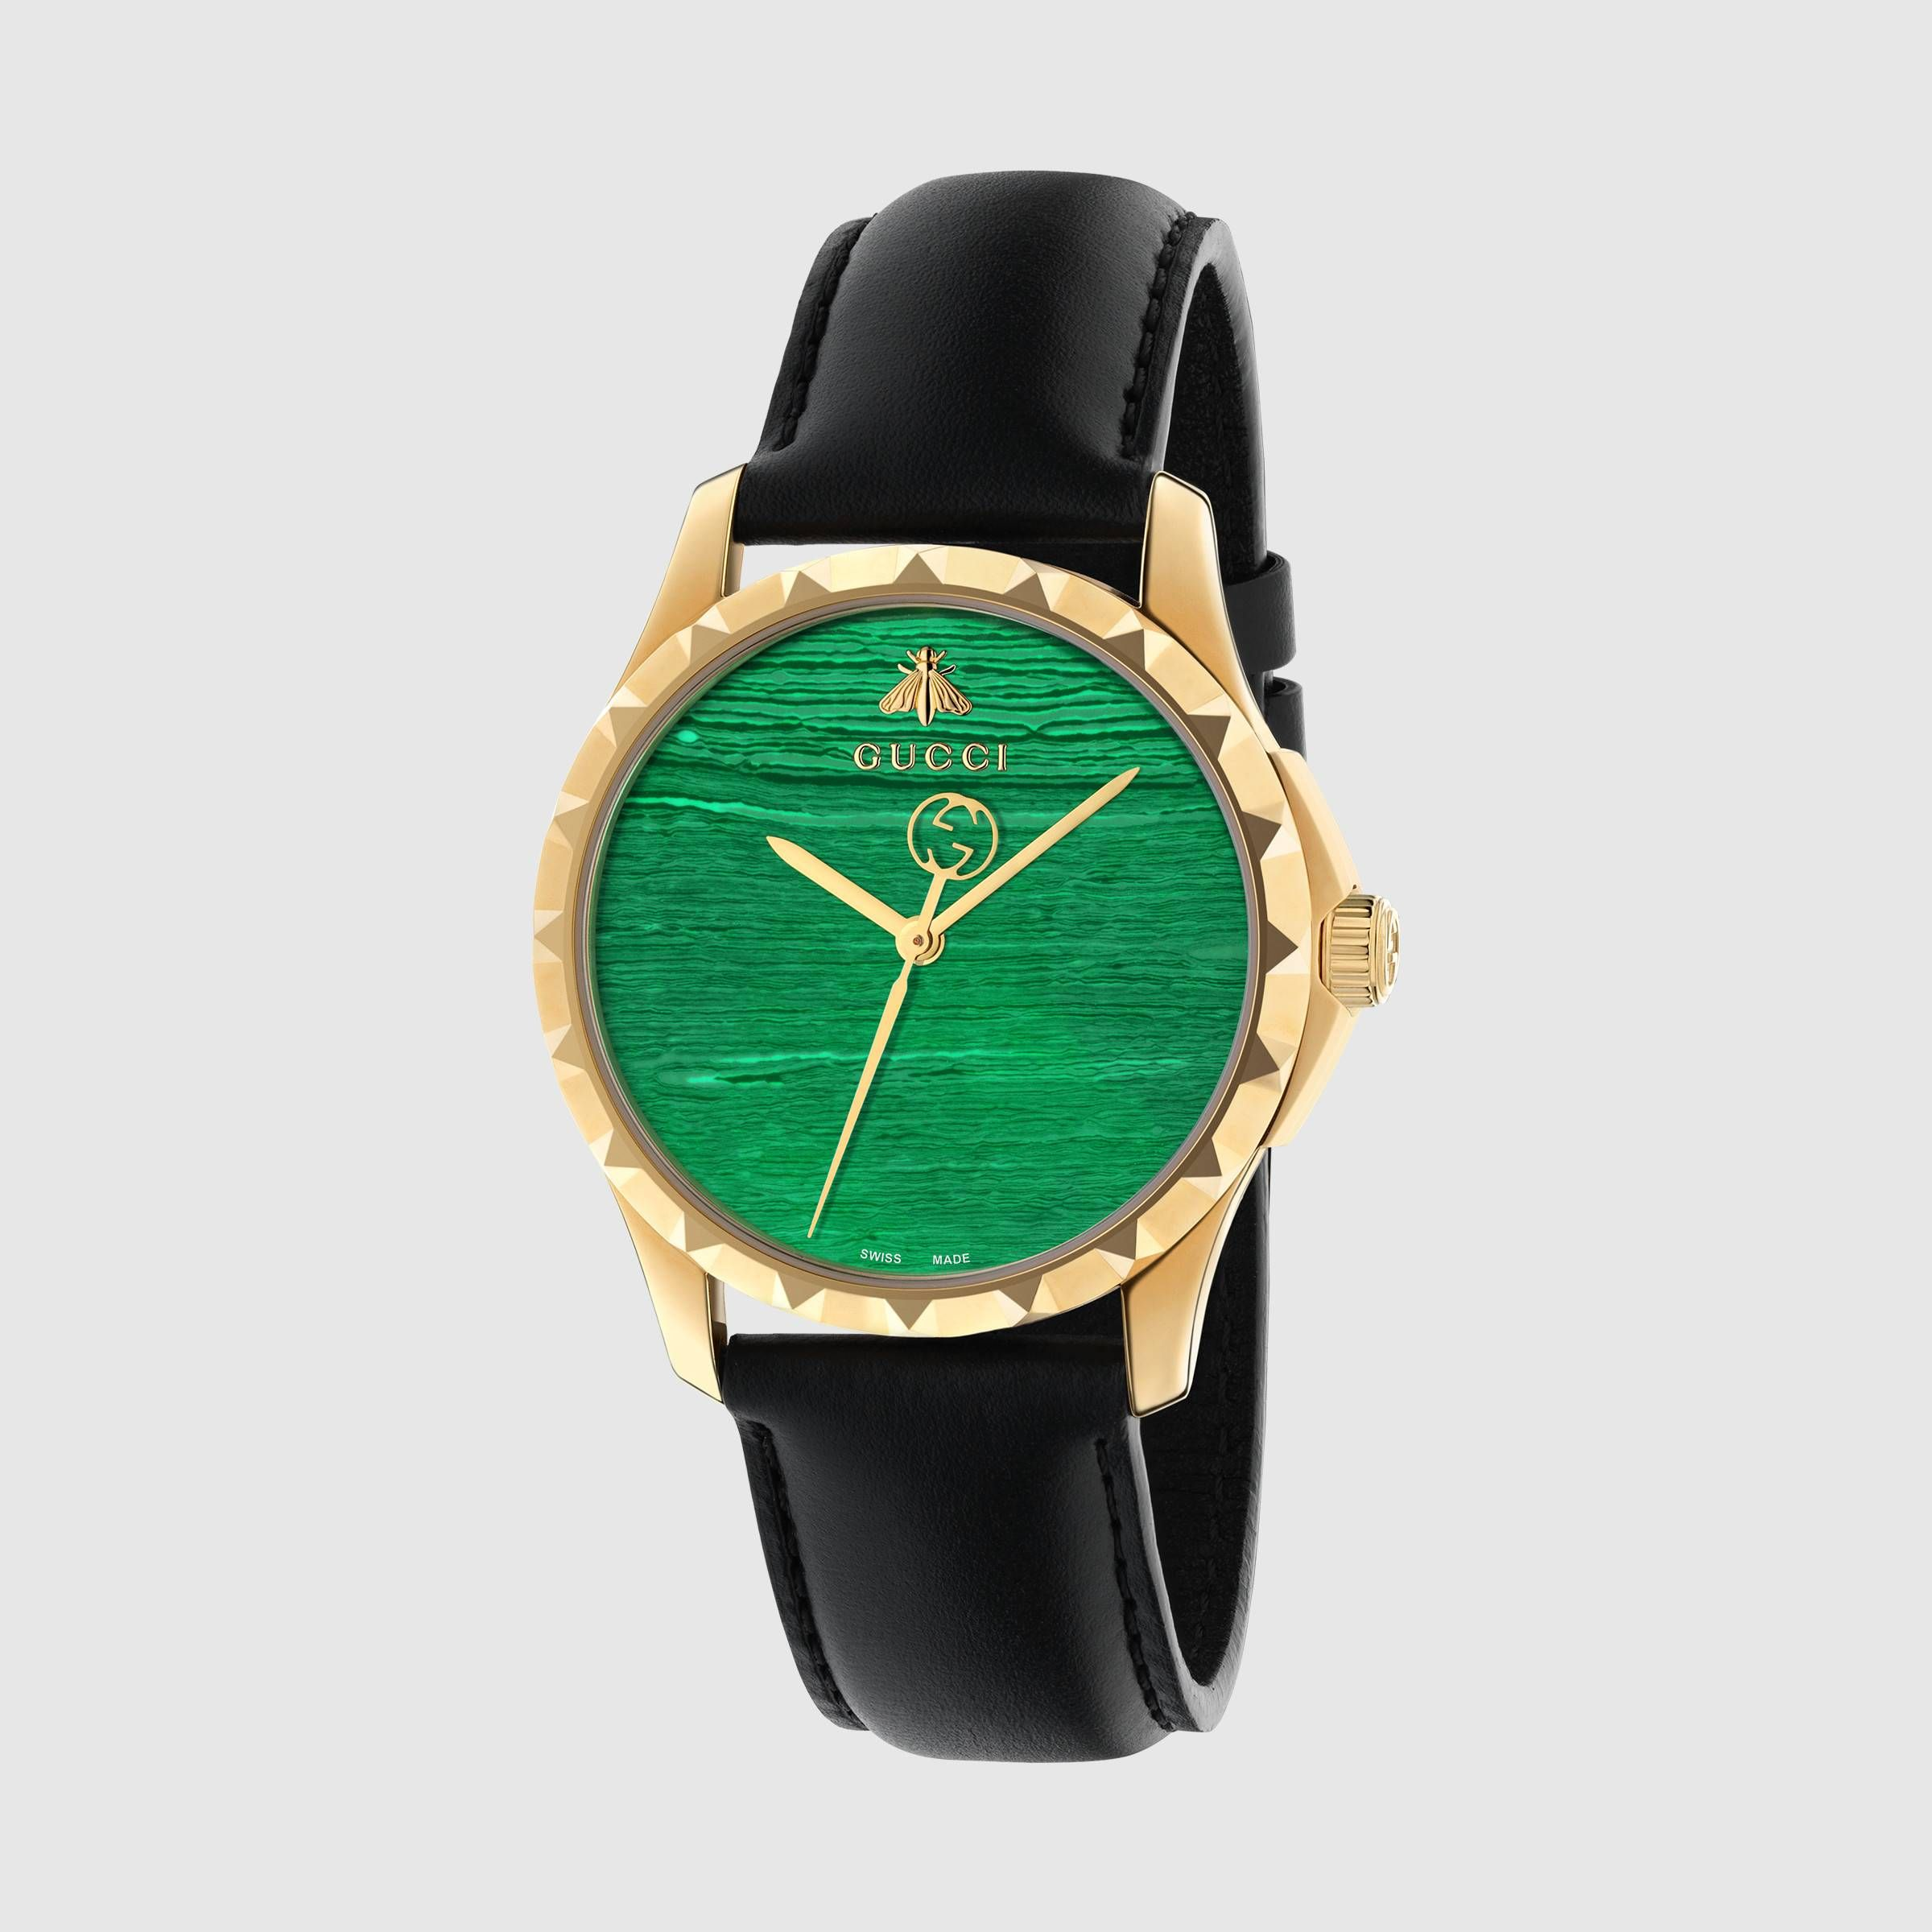 Le March Des Merveilles Watch 38mm Em 2018 Acessrios Fossil Cecile Multifunction Stainless Steel And Acetate Am 4632 Gucci For Women 437184i86i08651